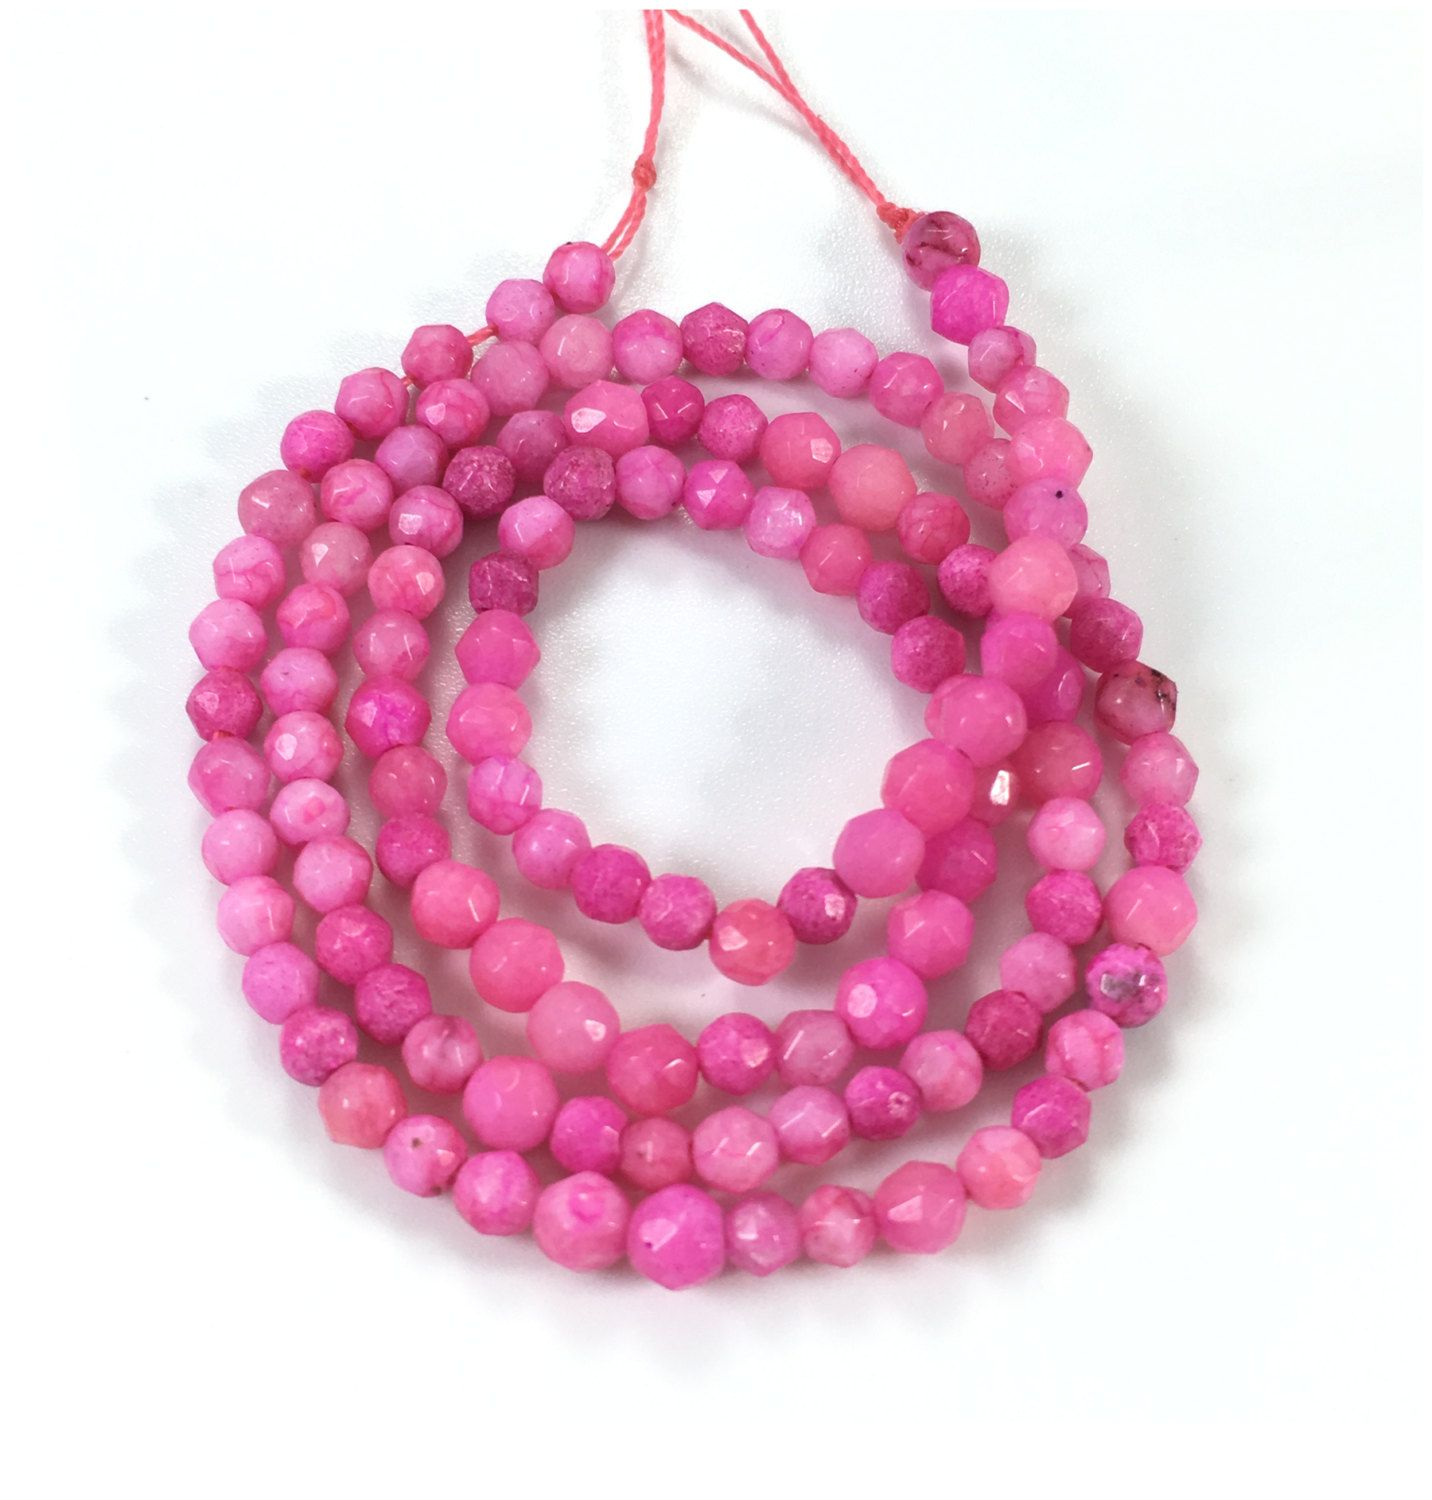 creative item wholesale and bead ranges findings beads from beadcraft fpm sale supplies asp